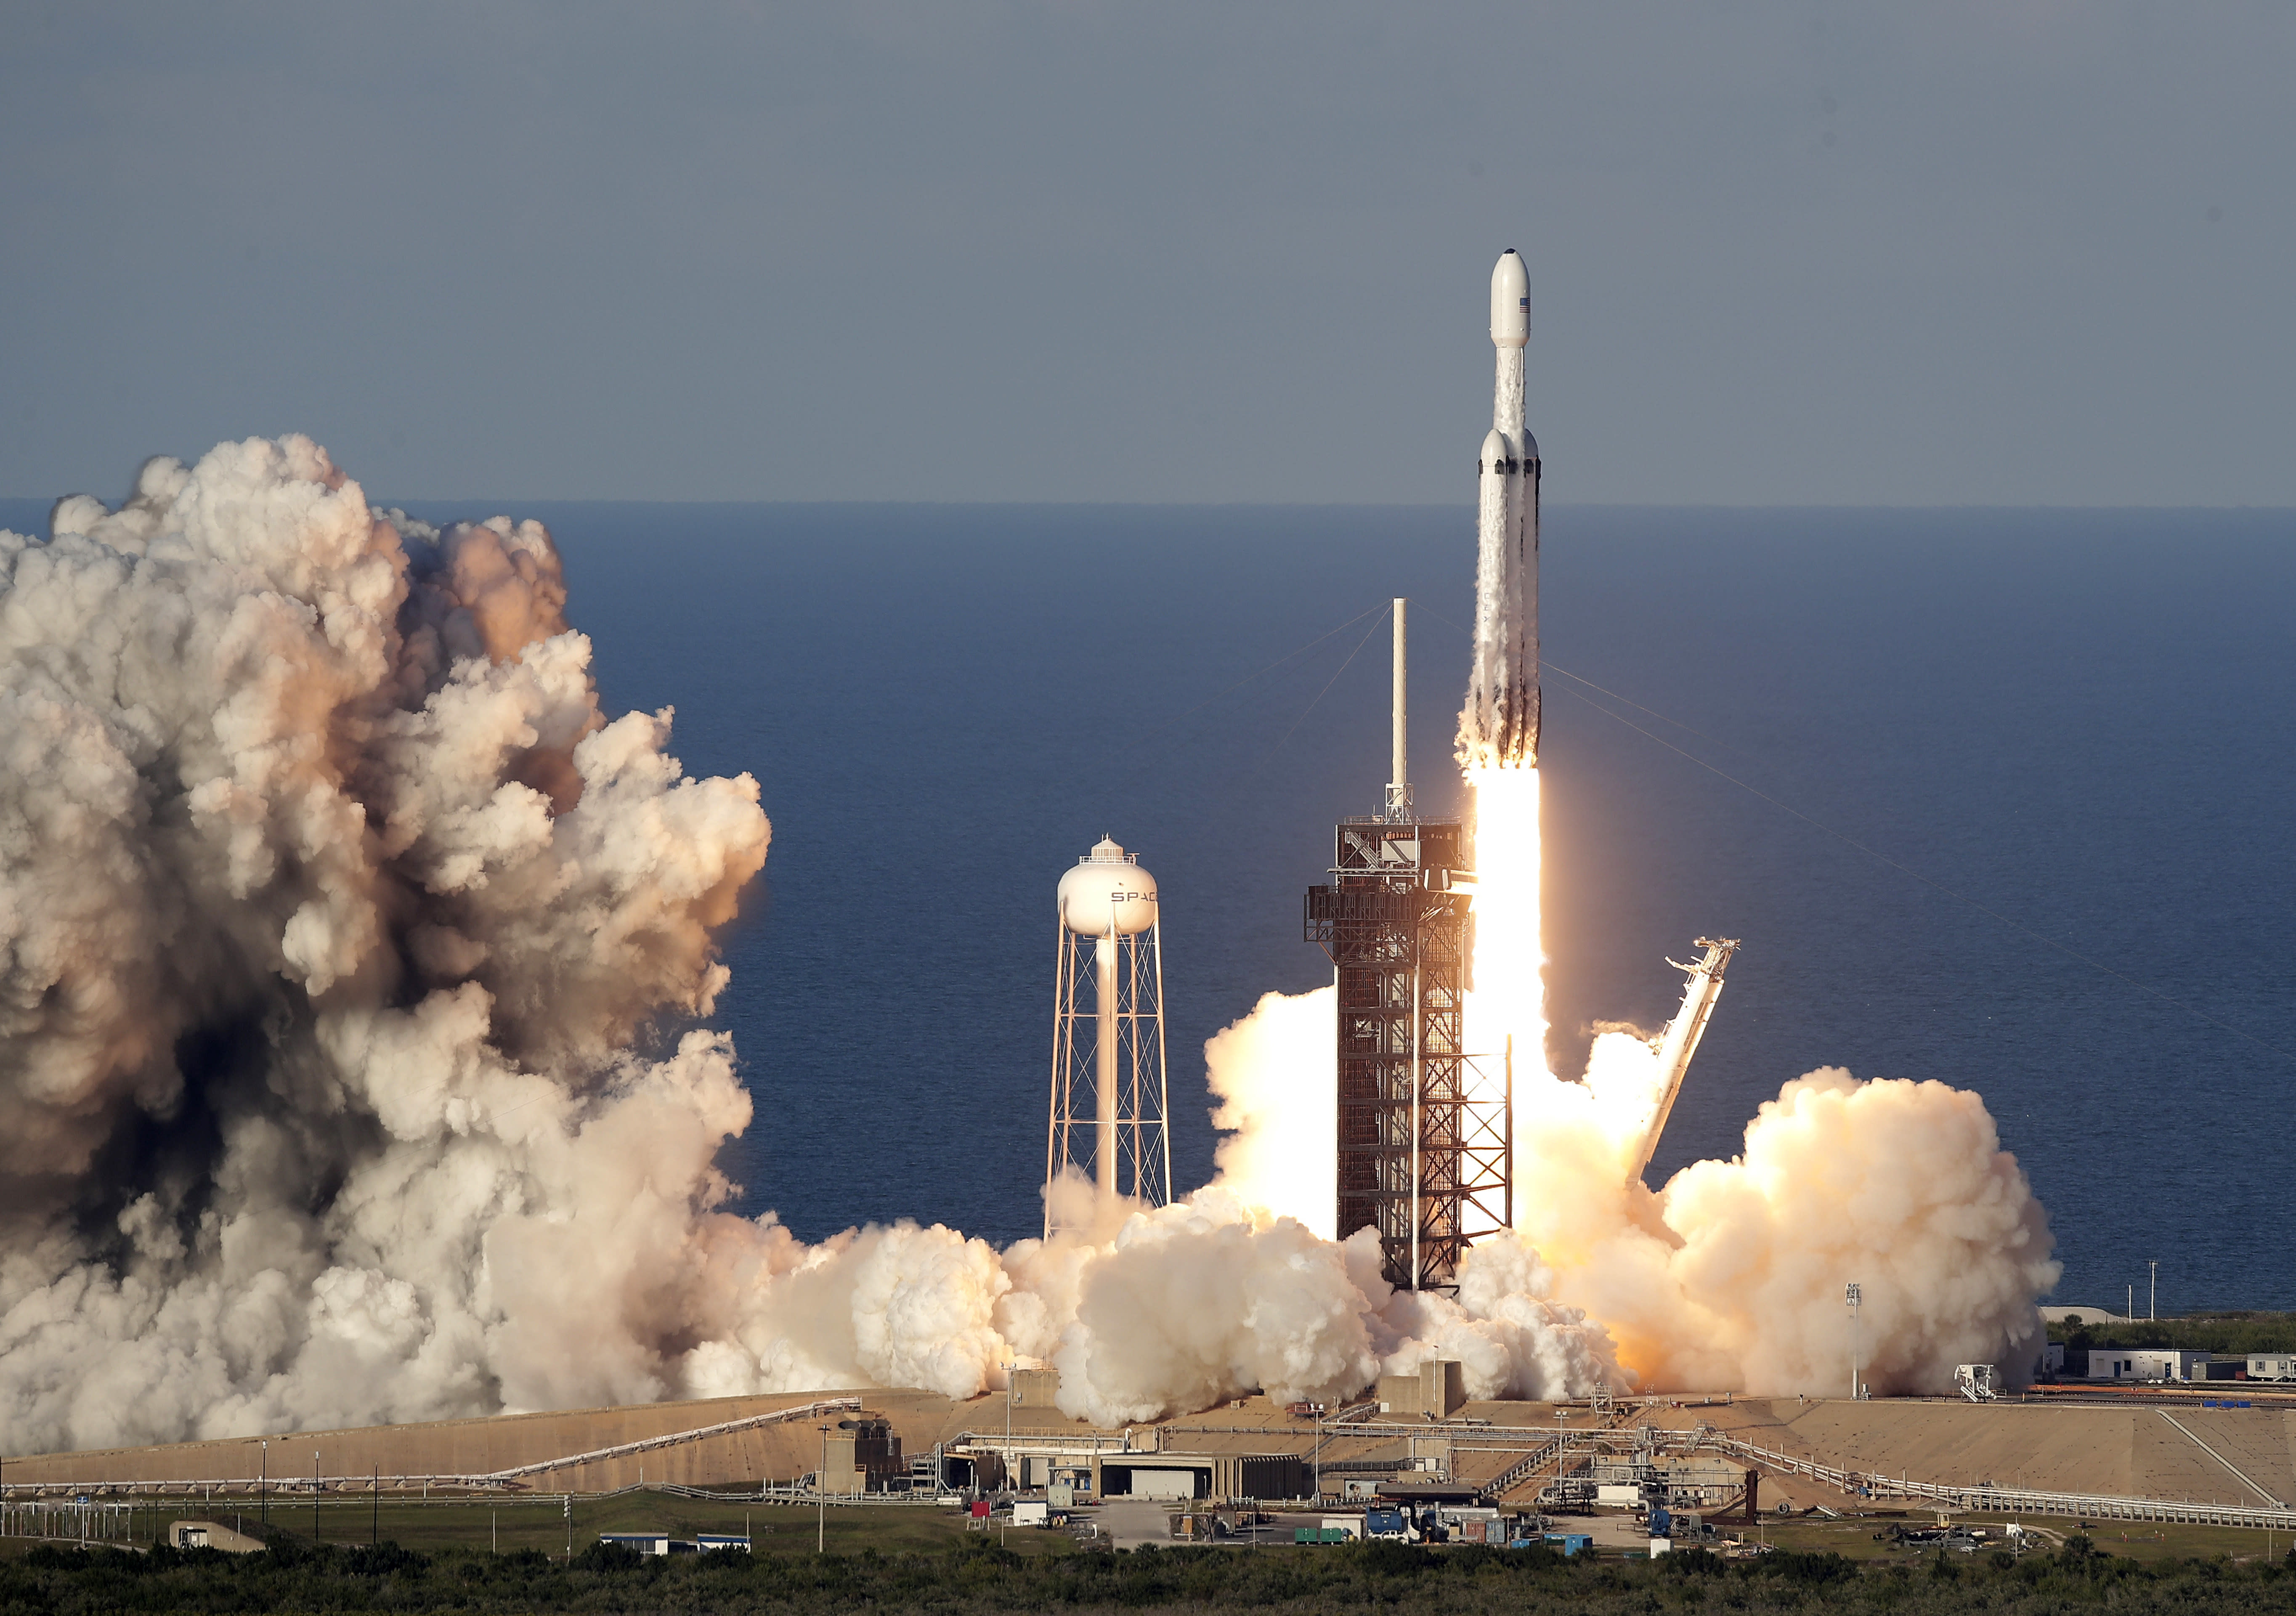 spacex launches rocket - HD3000×2111